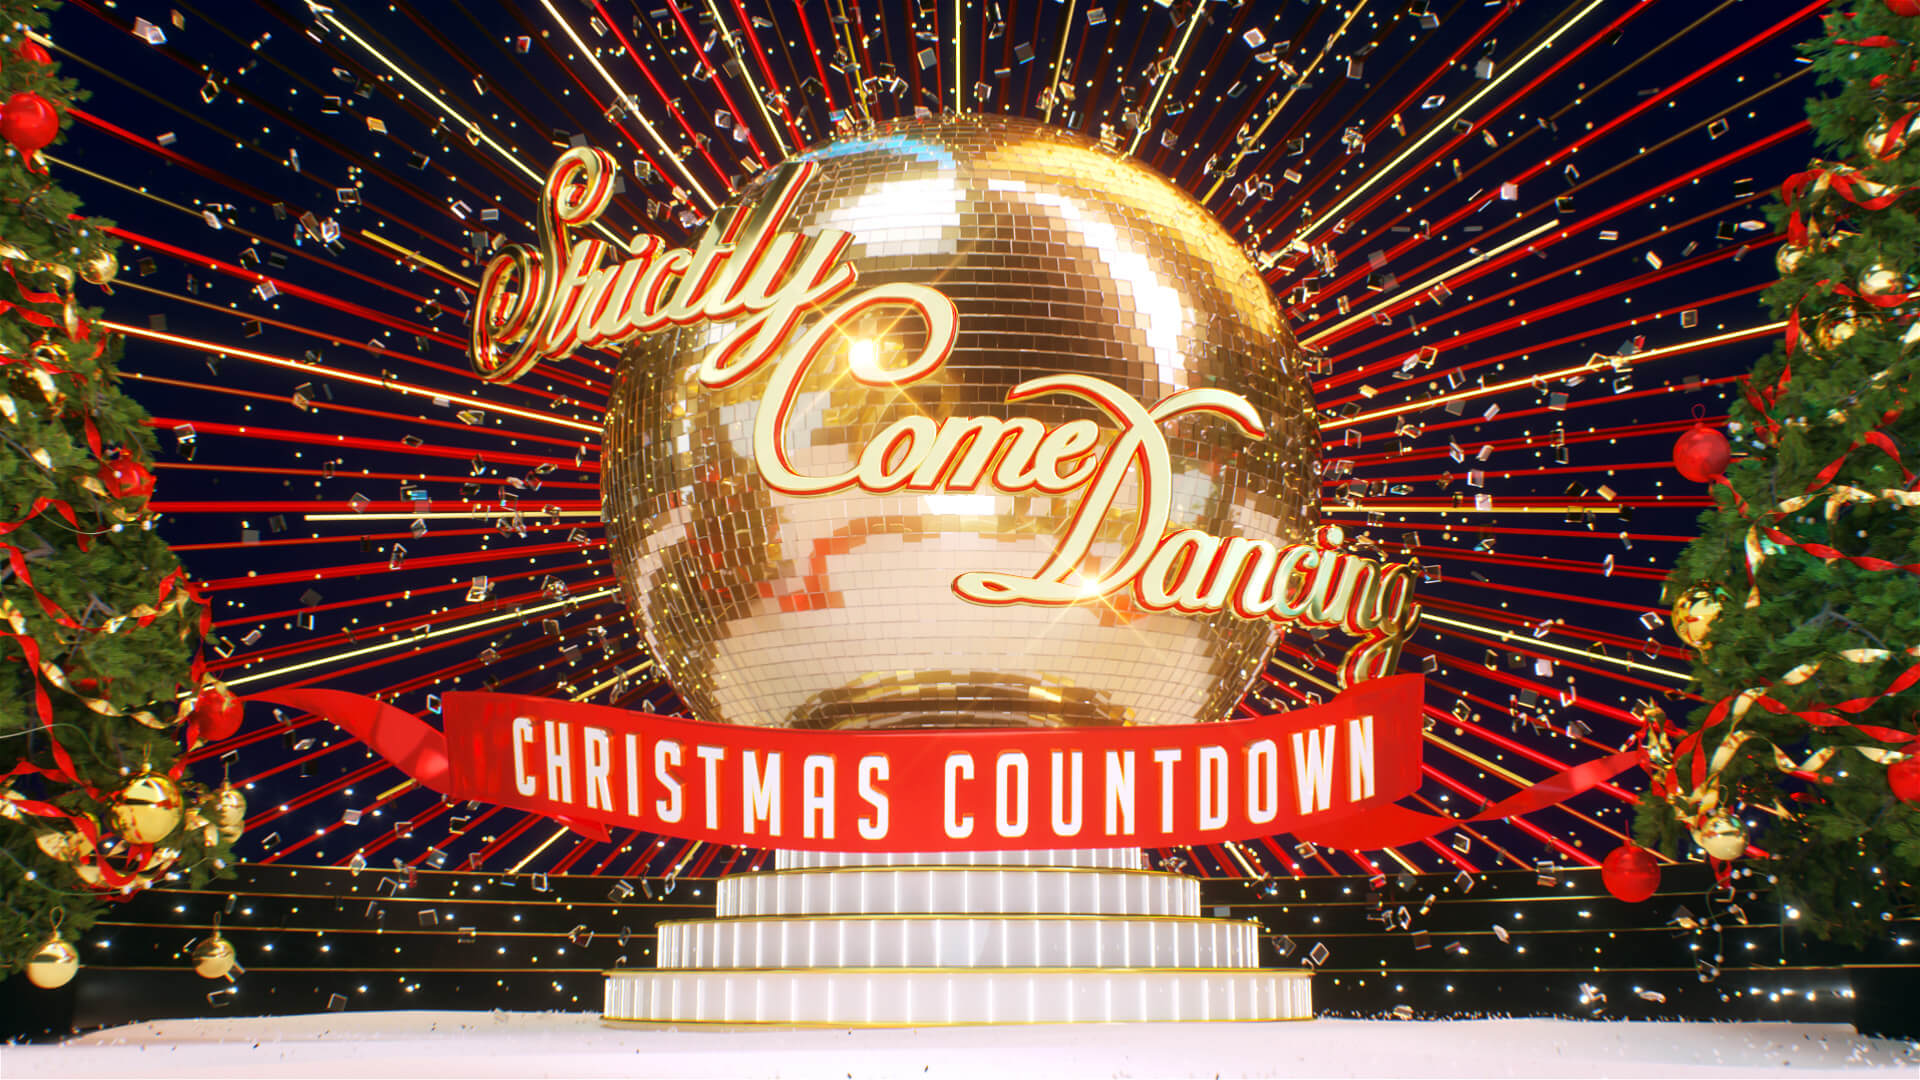 strictly come dancing christmas countdown